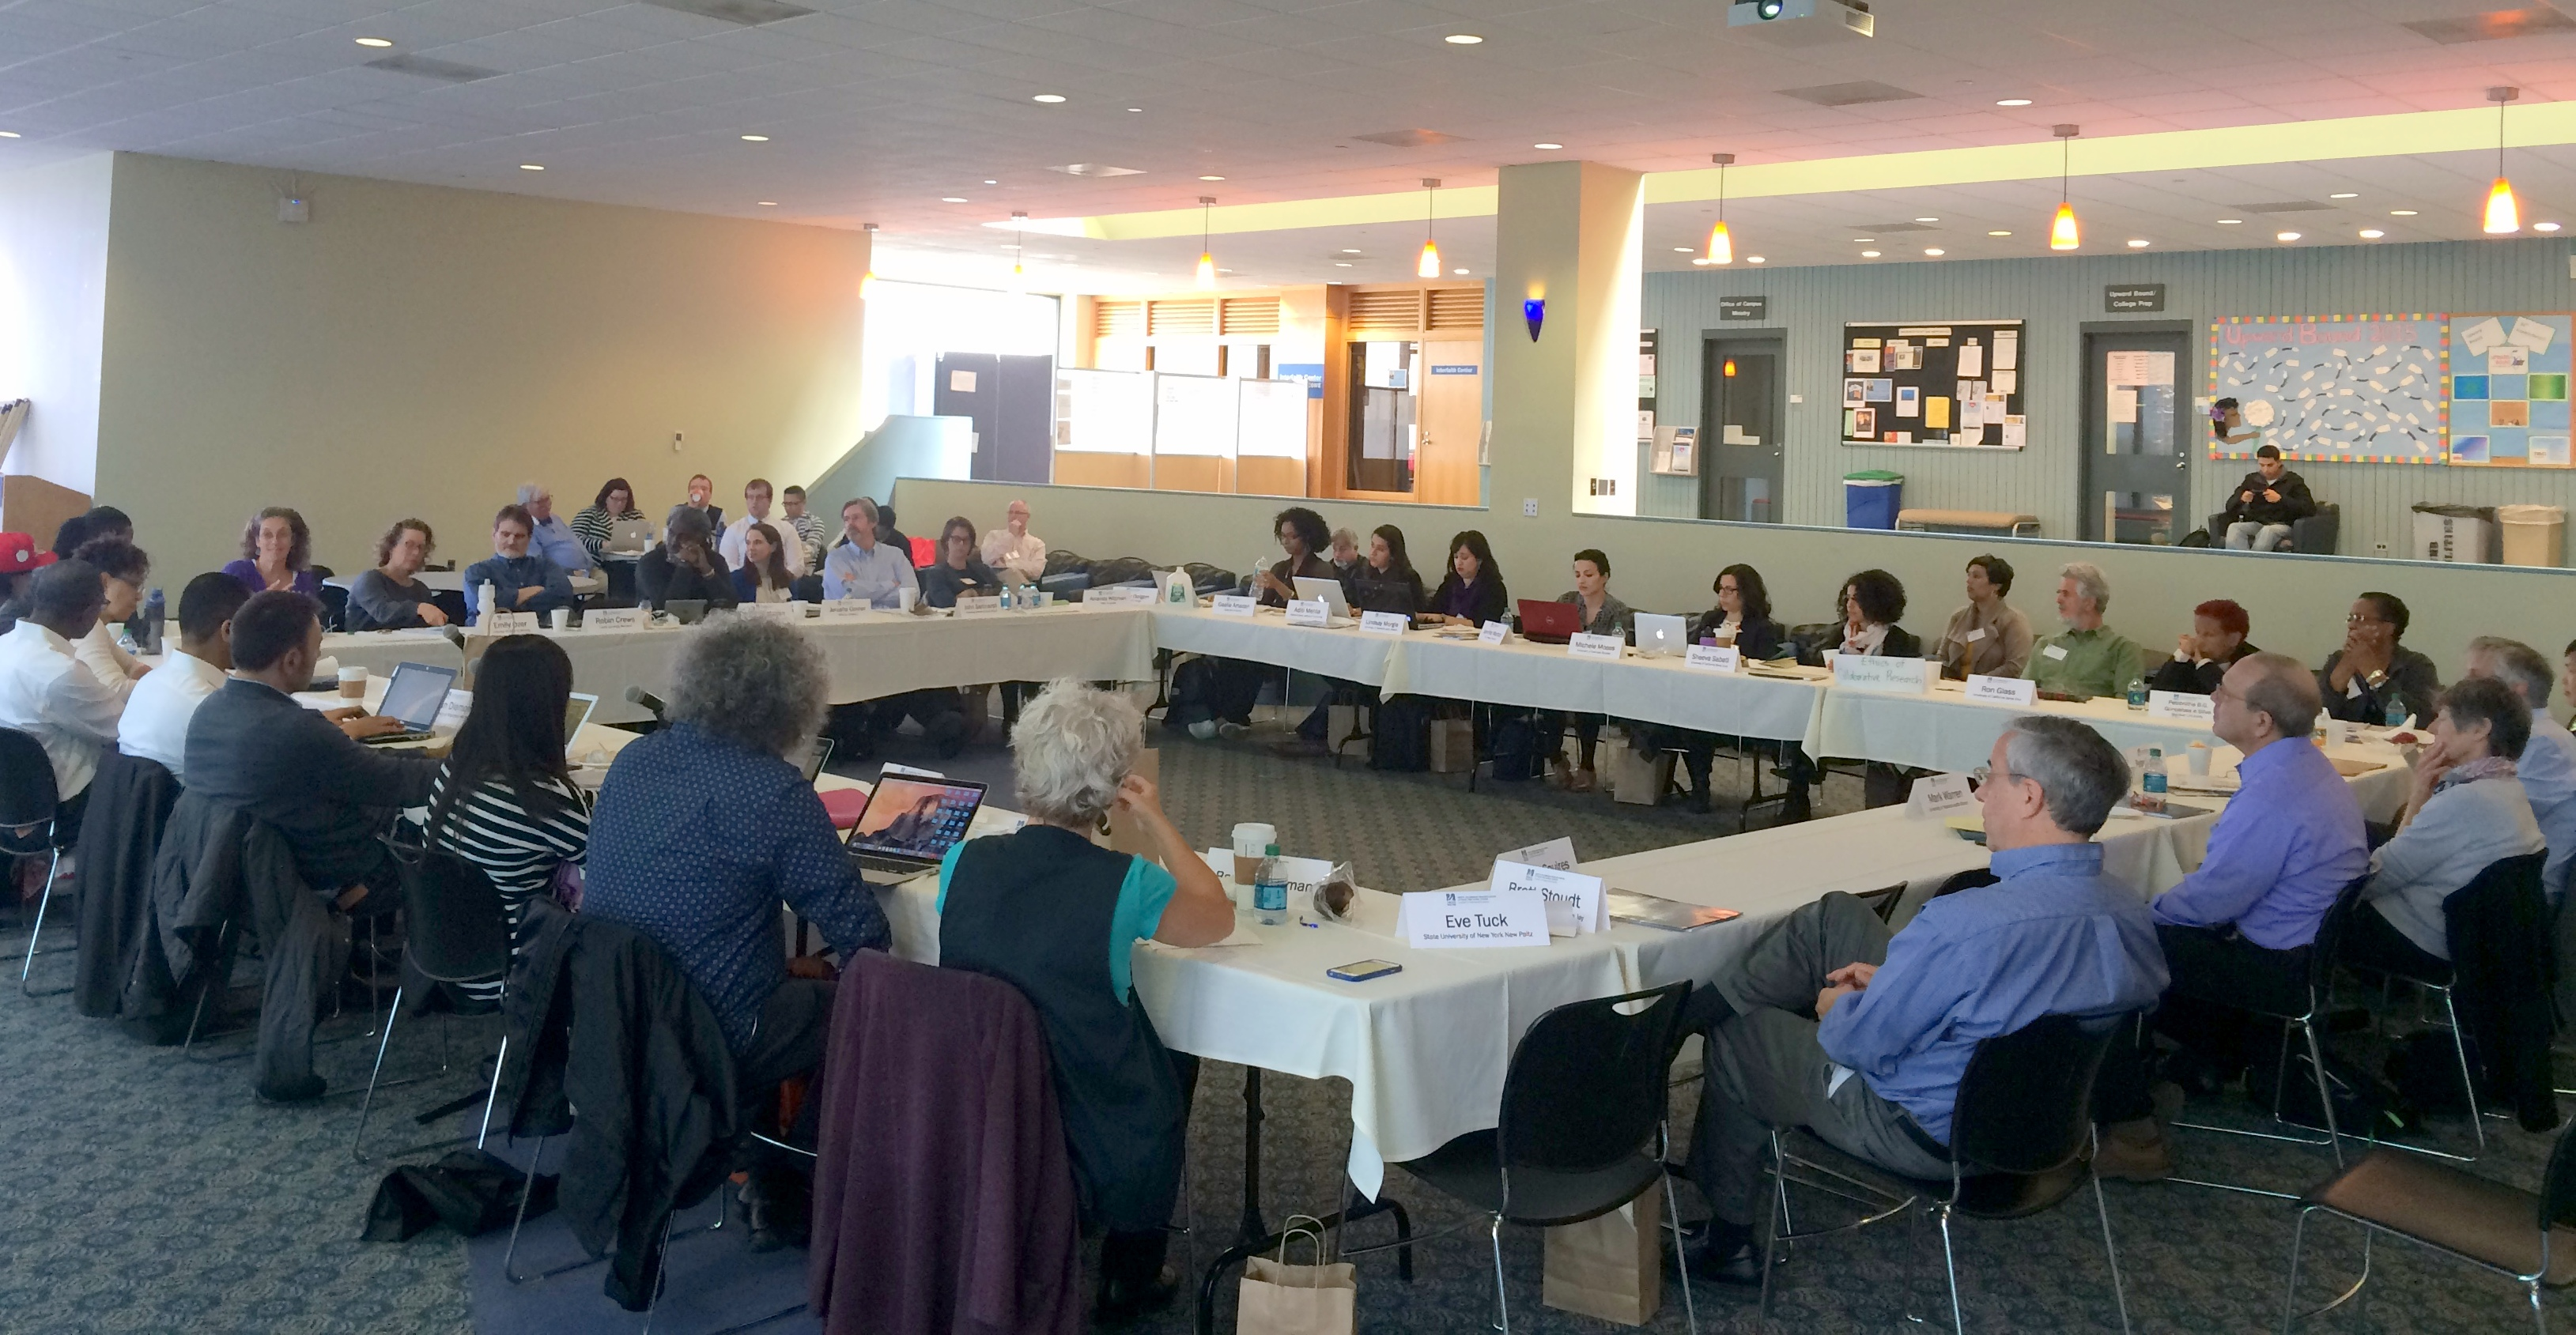 McCormack Graduate School hosted a two-day working conference on